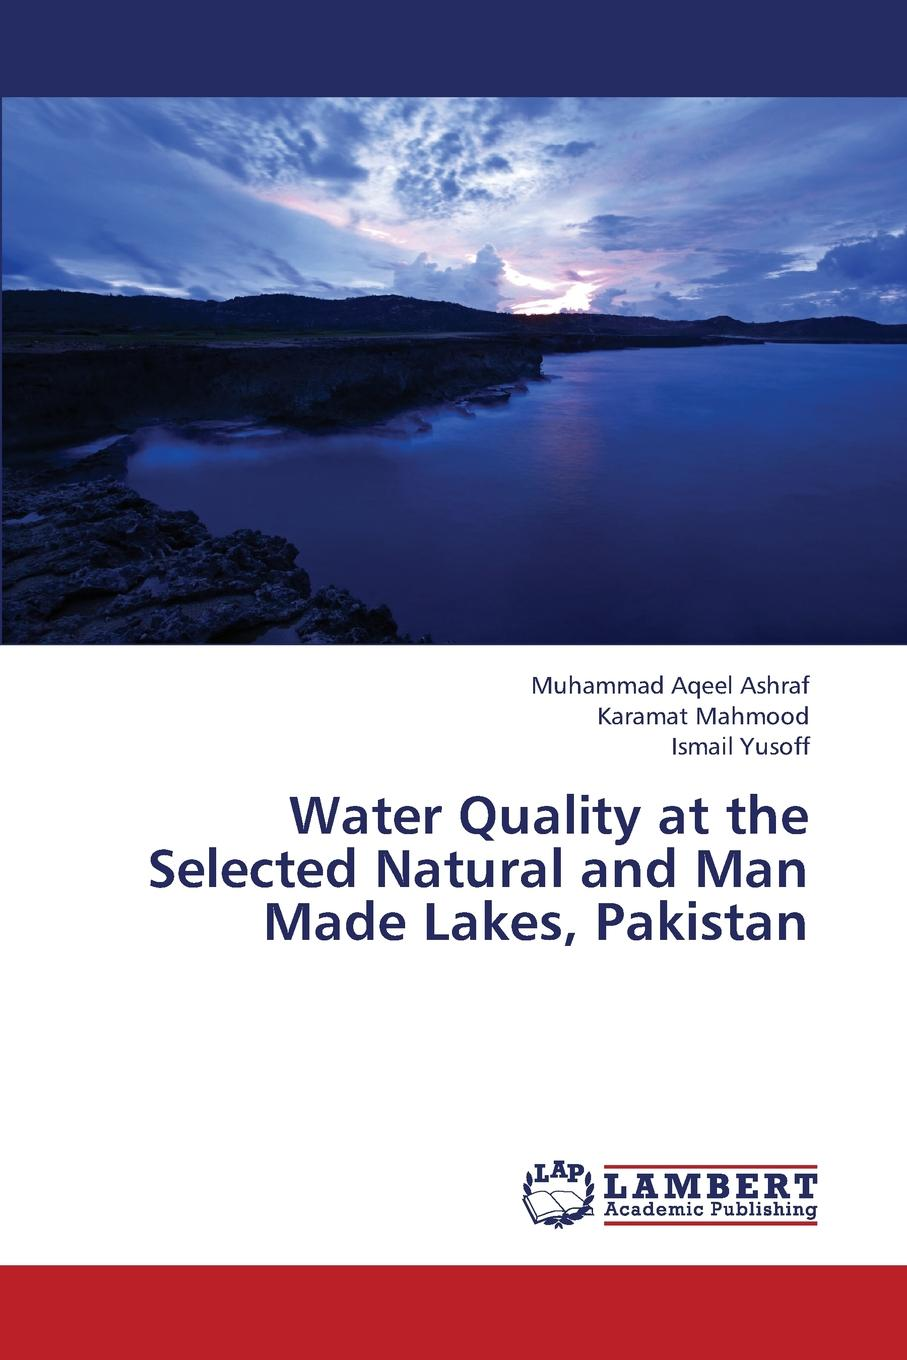 Ashraf Muhammad Aqeel, Mahmood Karamat, Yusoff Ismail Water Quality at the Selected Natural and Man Made Lakes, Pakistan механизм переключателя 1 кл onekeyelectro 1e31401300 сп florence бел